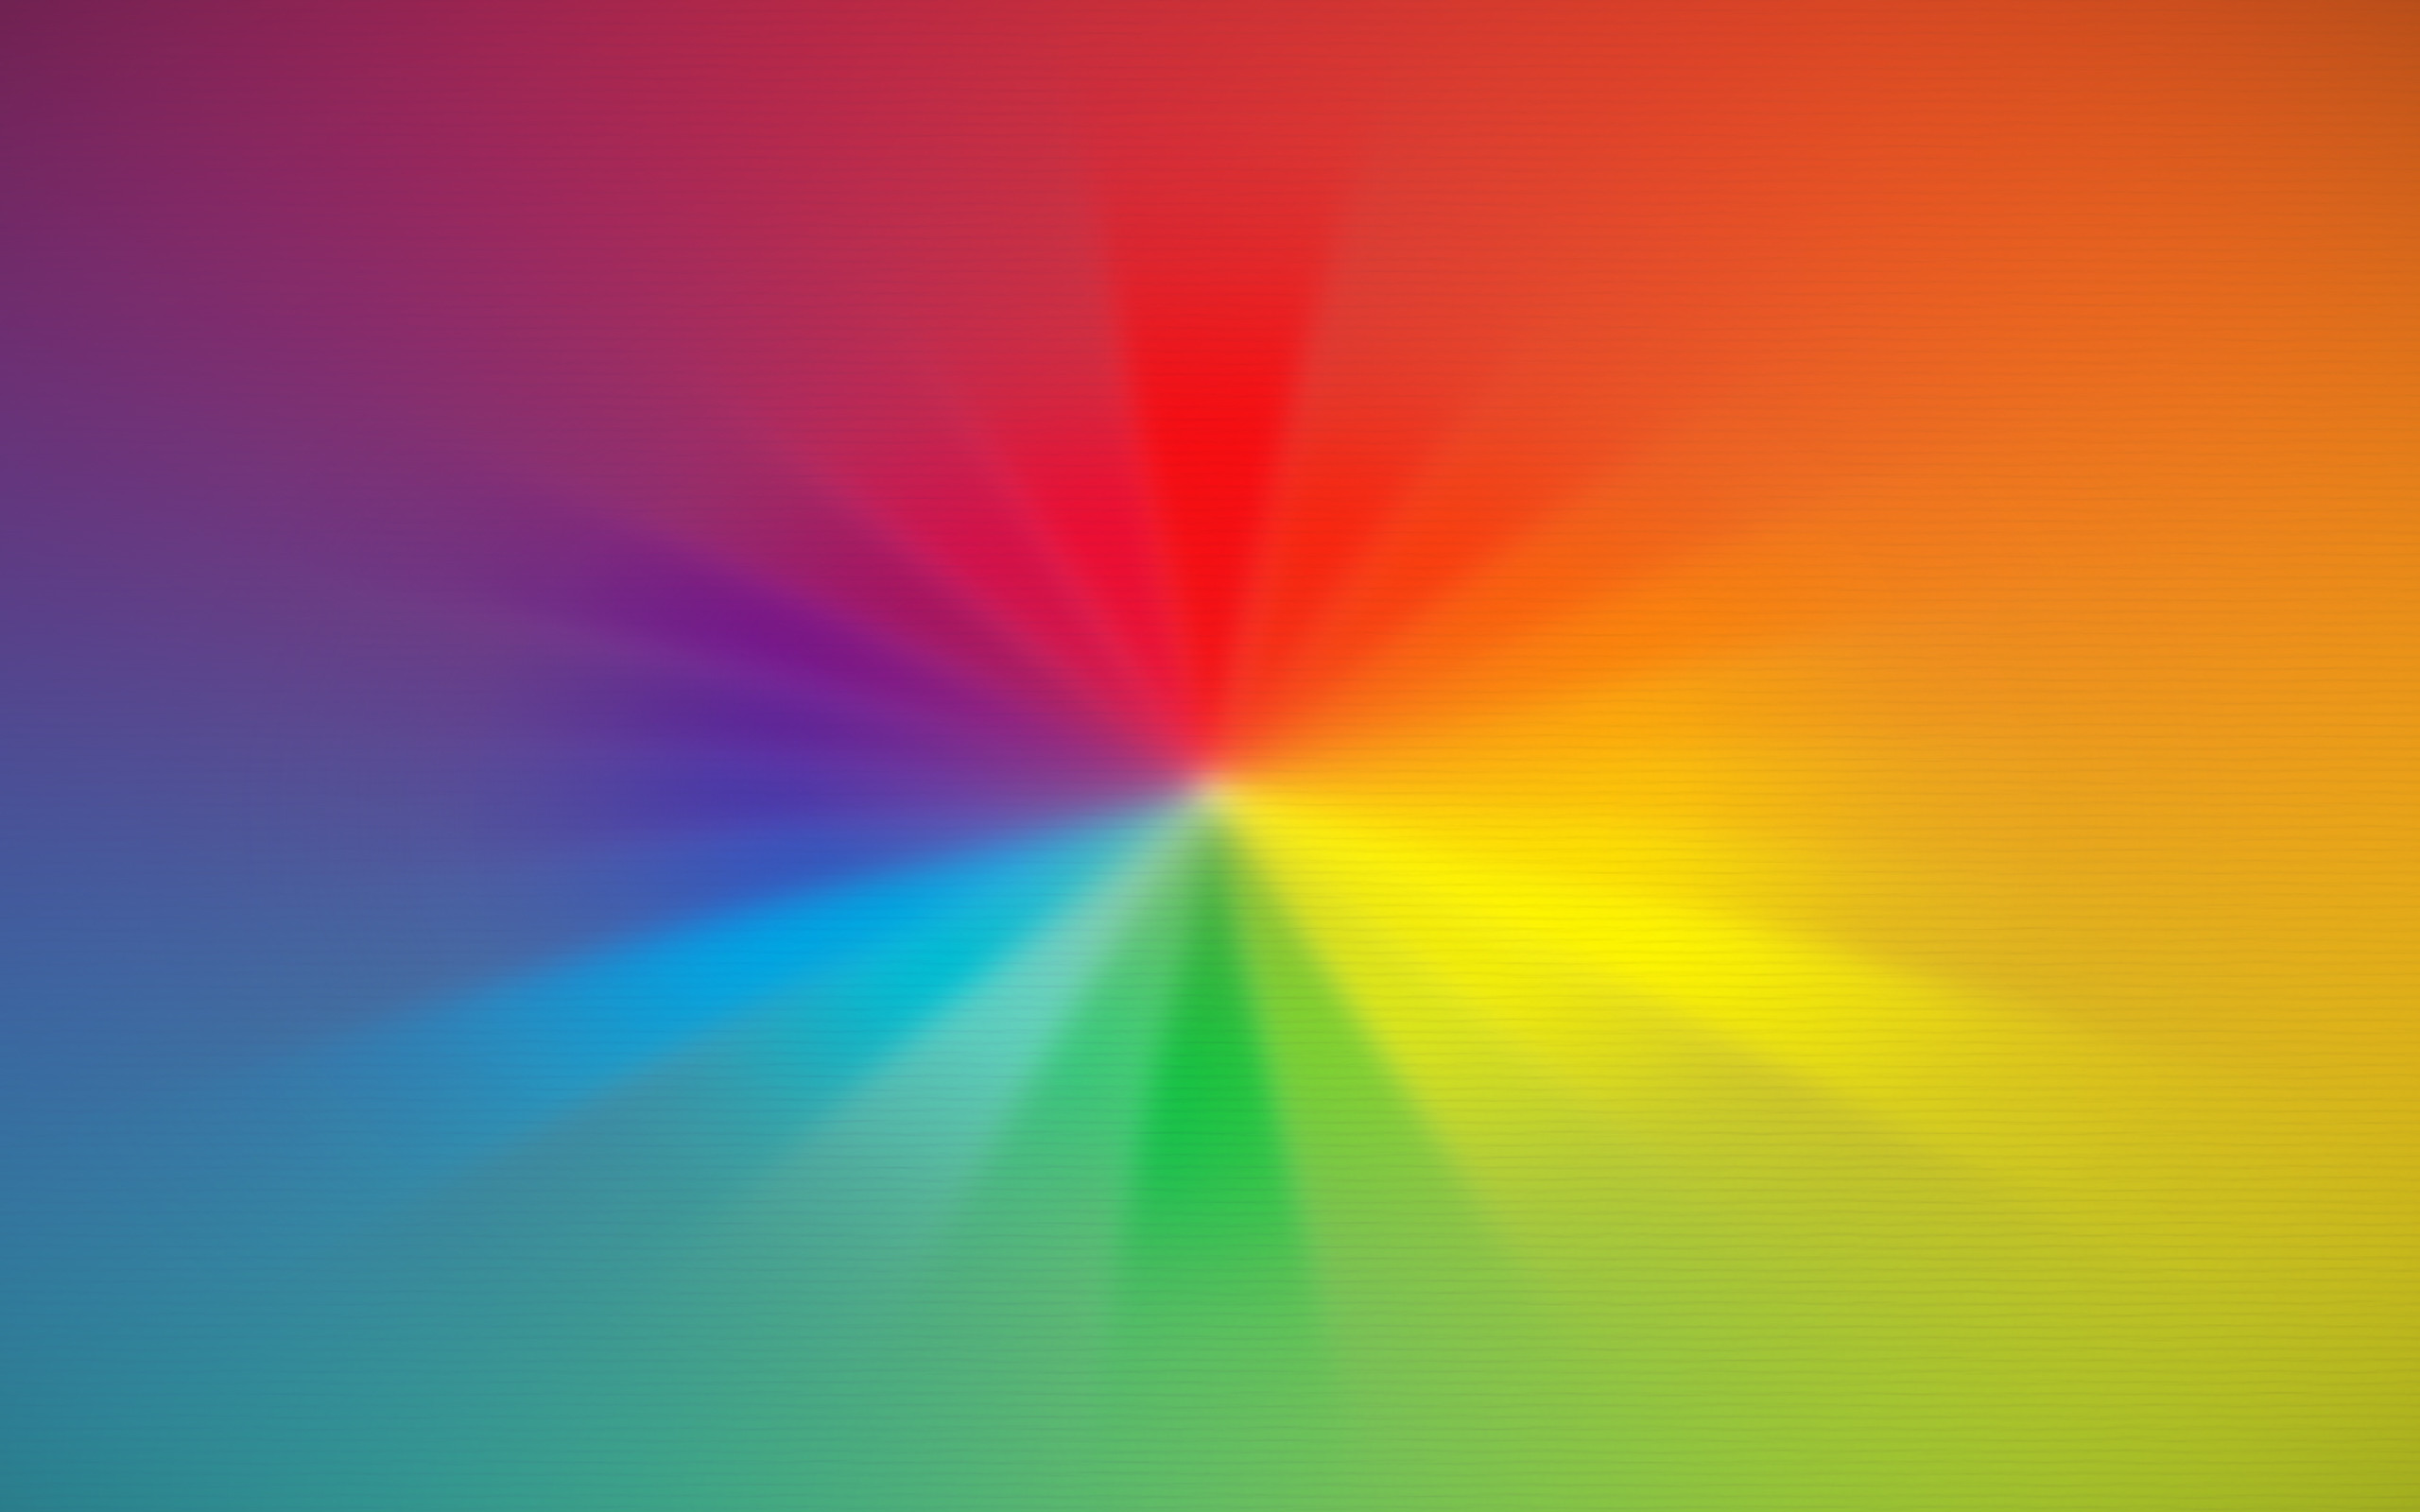 2560x1600 30 Impressive Colour Spectrum and Rainbow Wallpapers